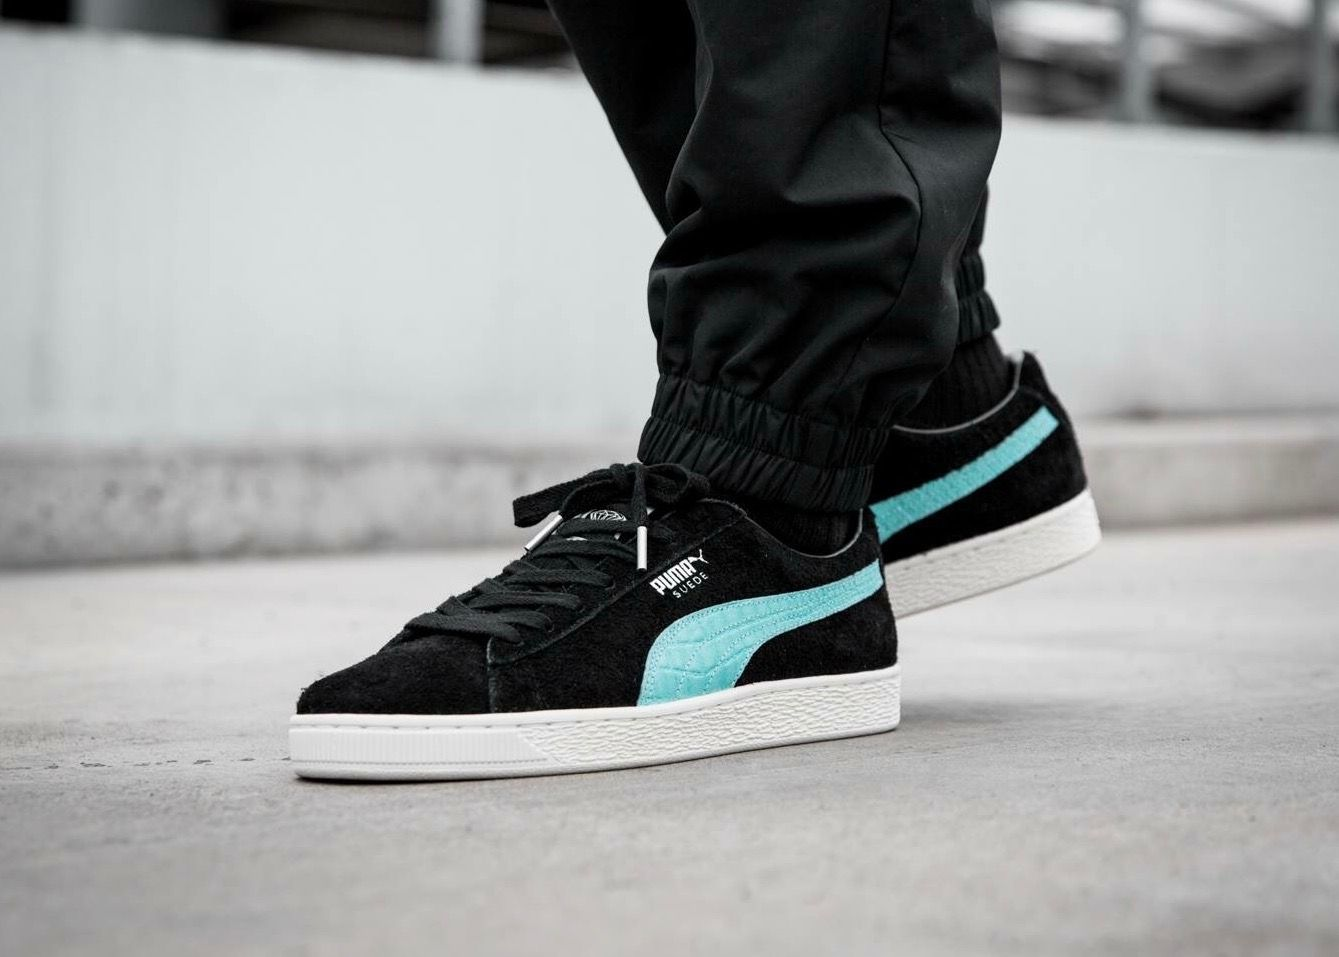 fef0a7e4f3f Diamond Supply Co x Puma Suede